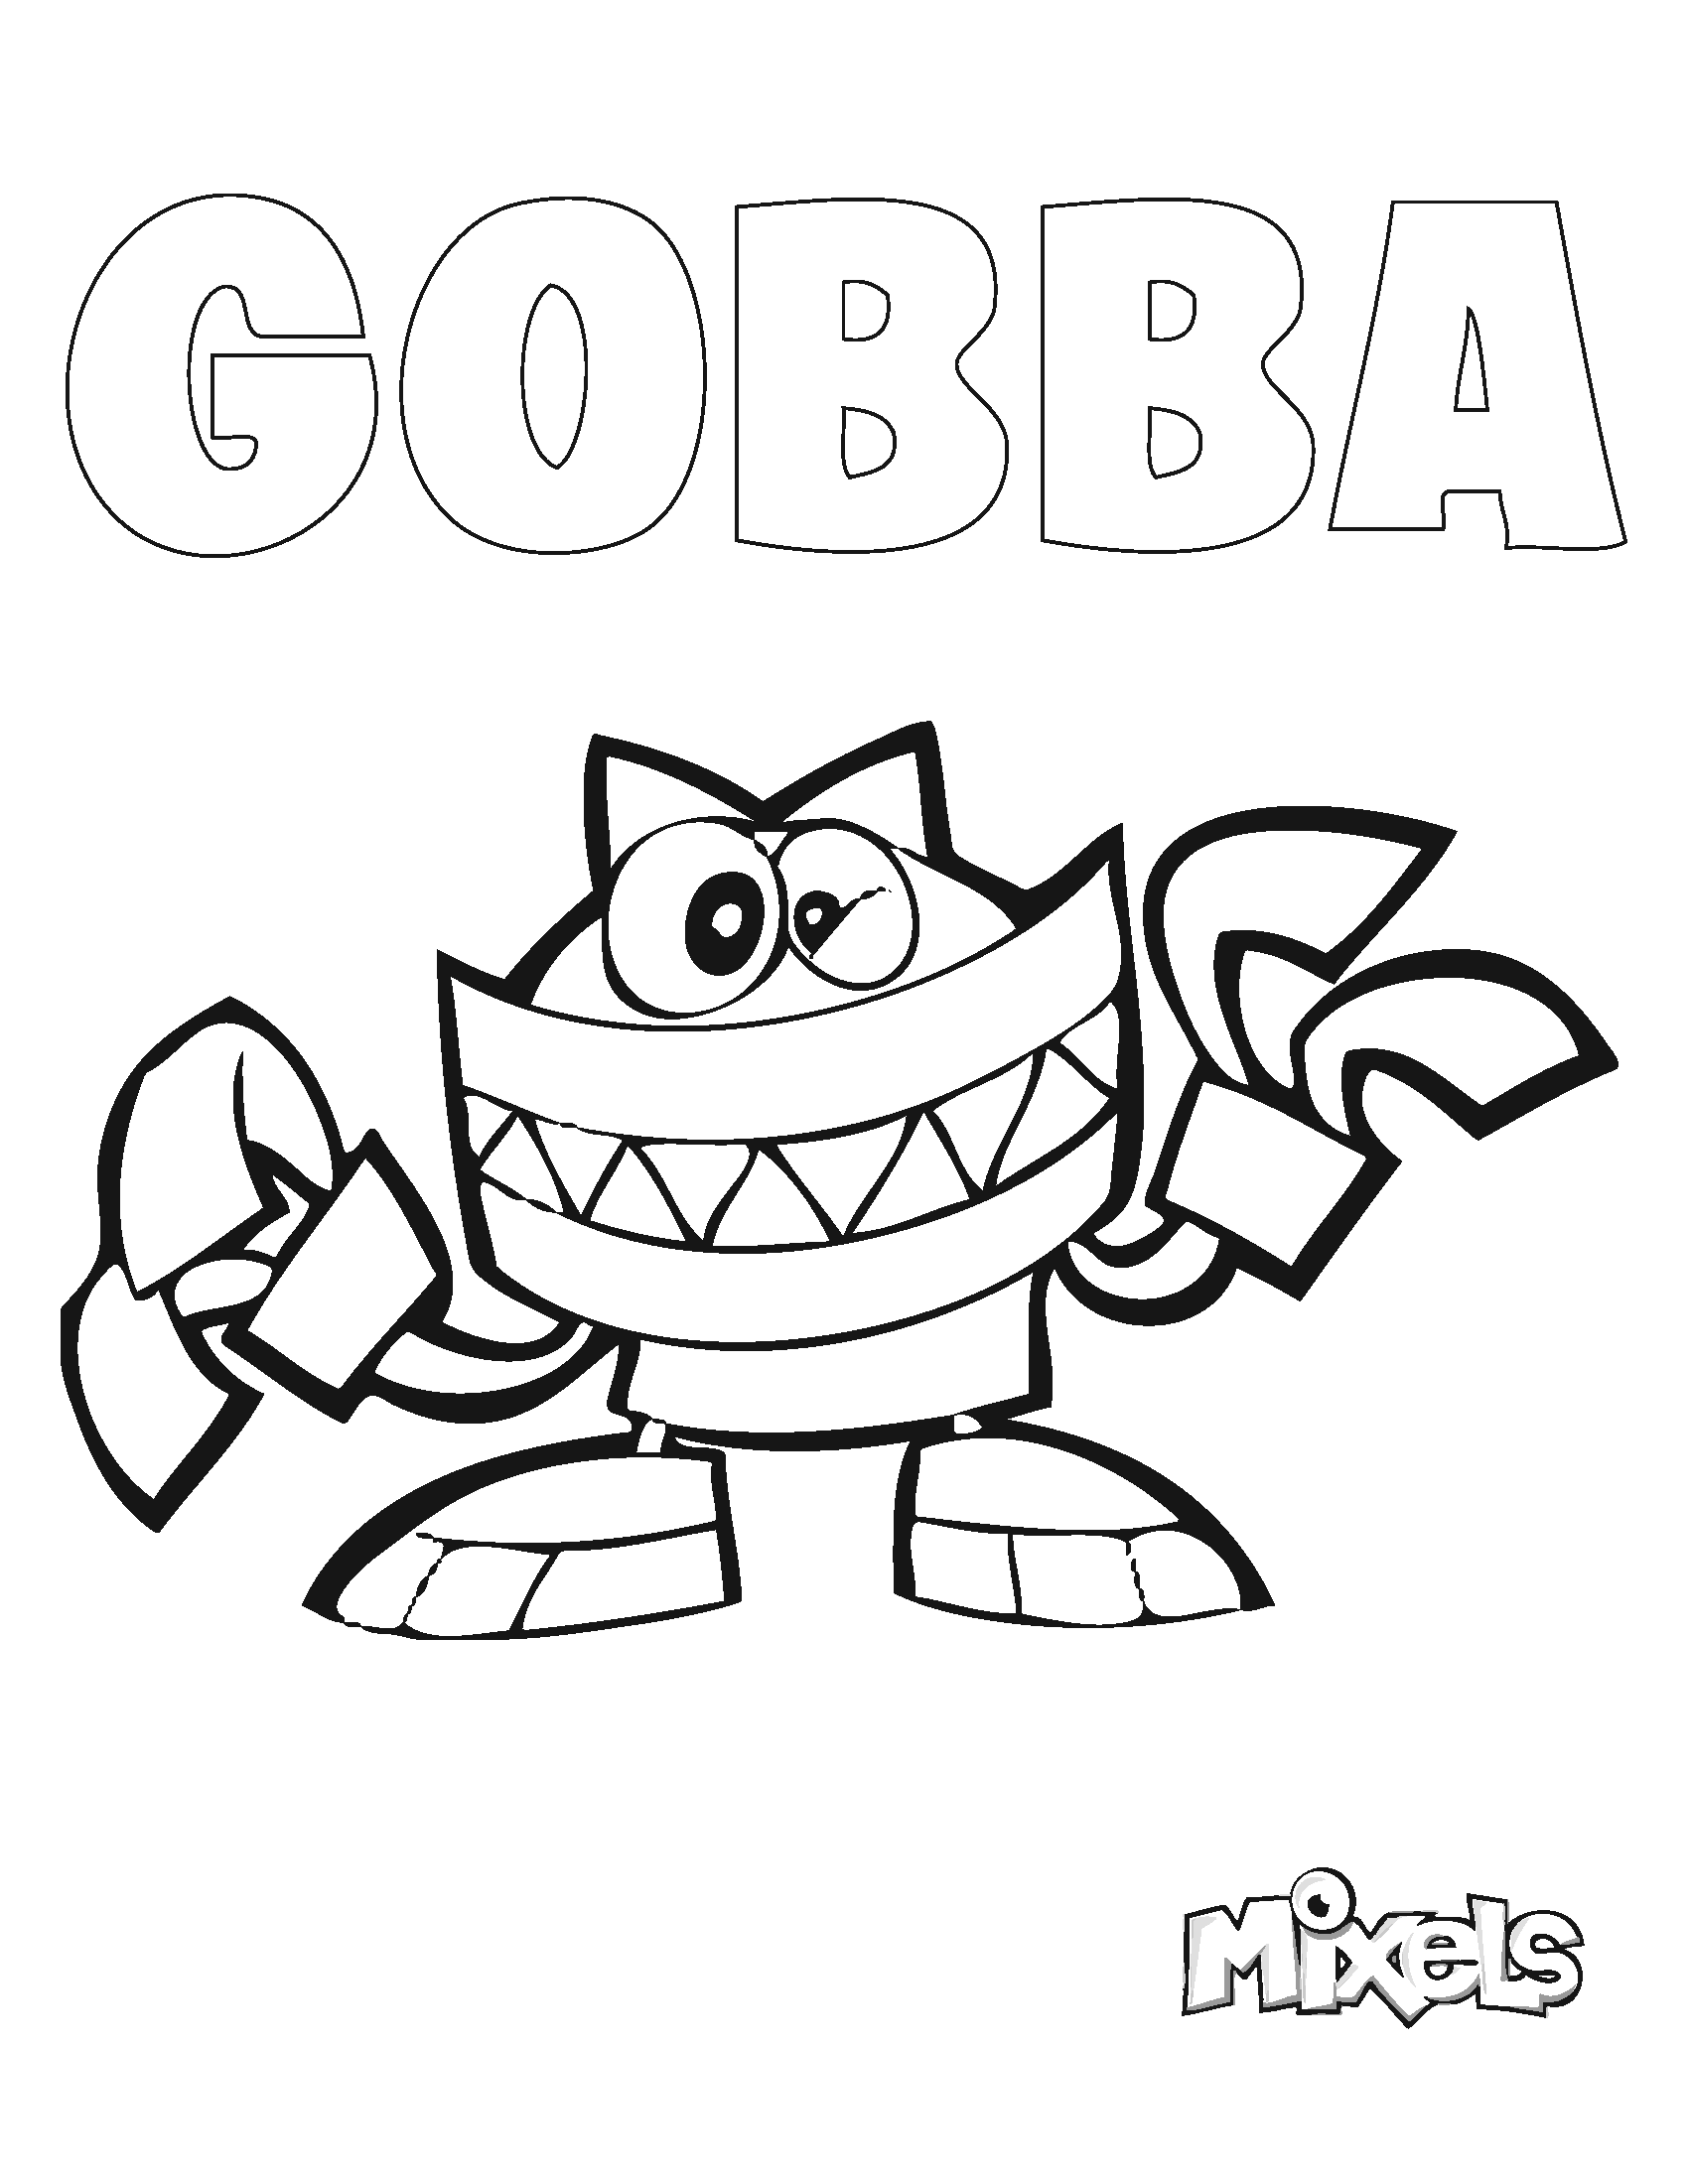 mixel coloring pages fla in - photo#14